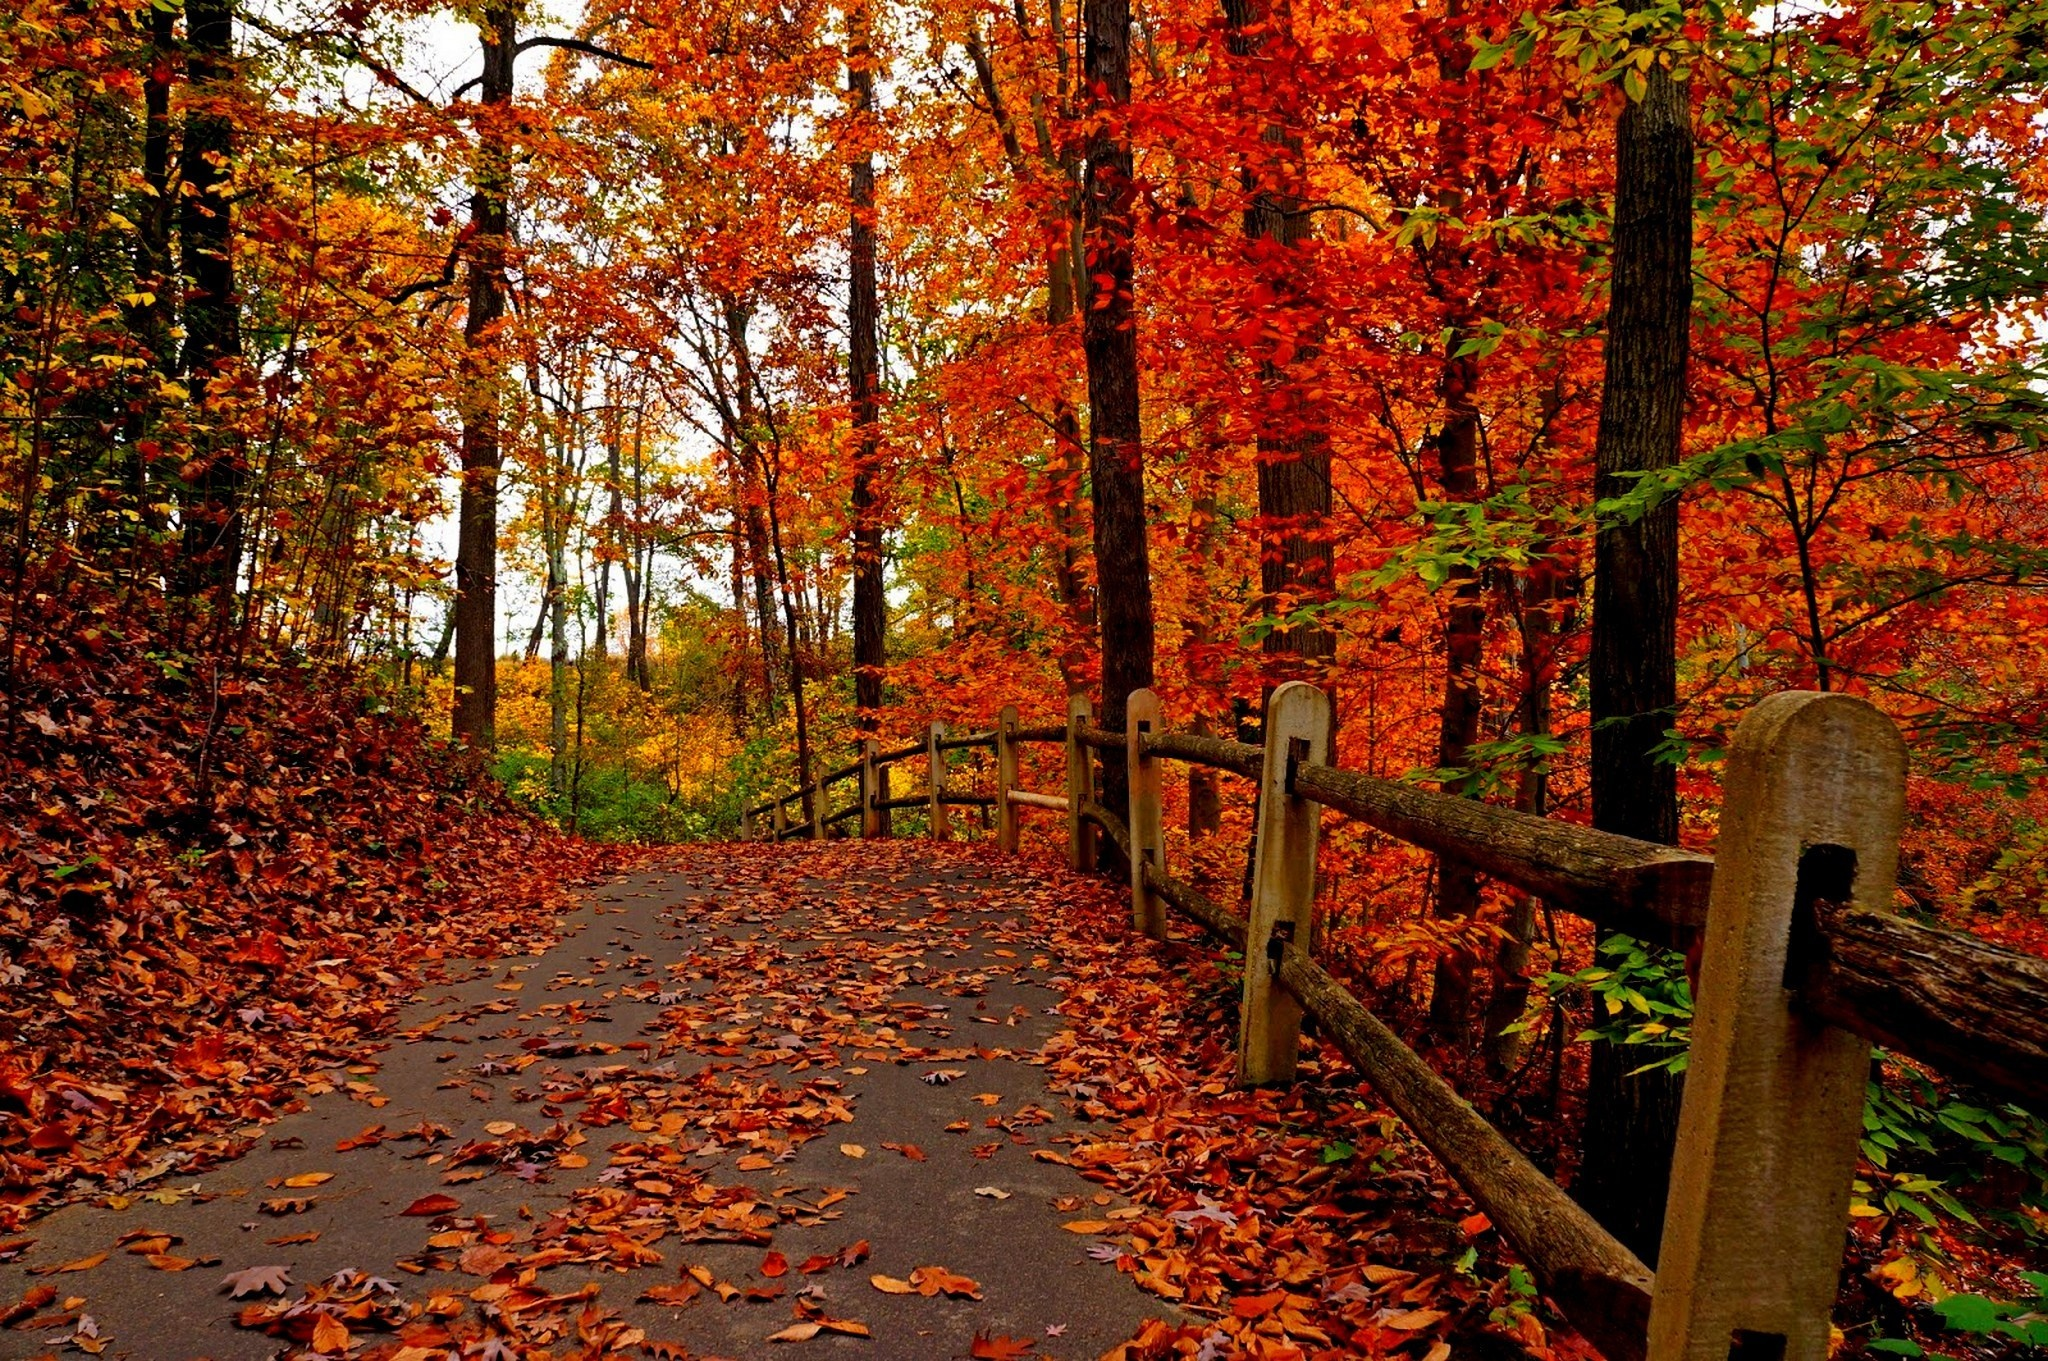 Nature trees colorful road autumn path forest leaves park